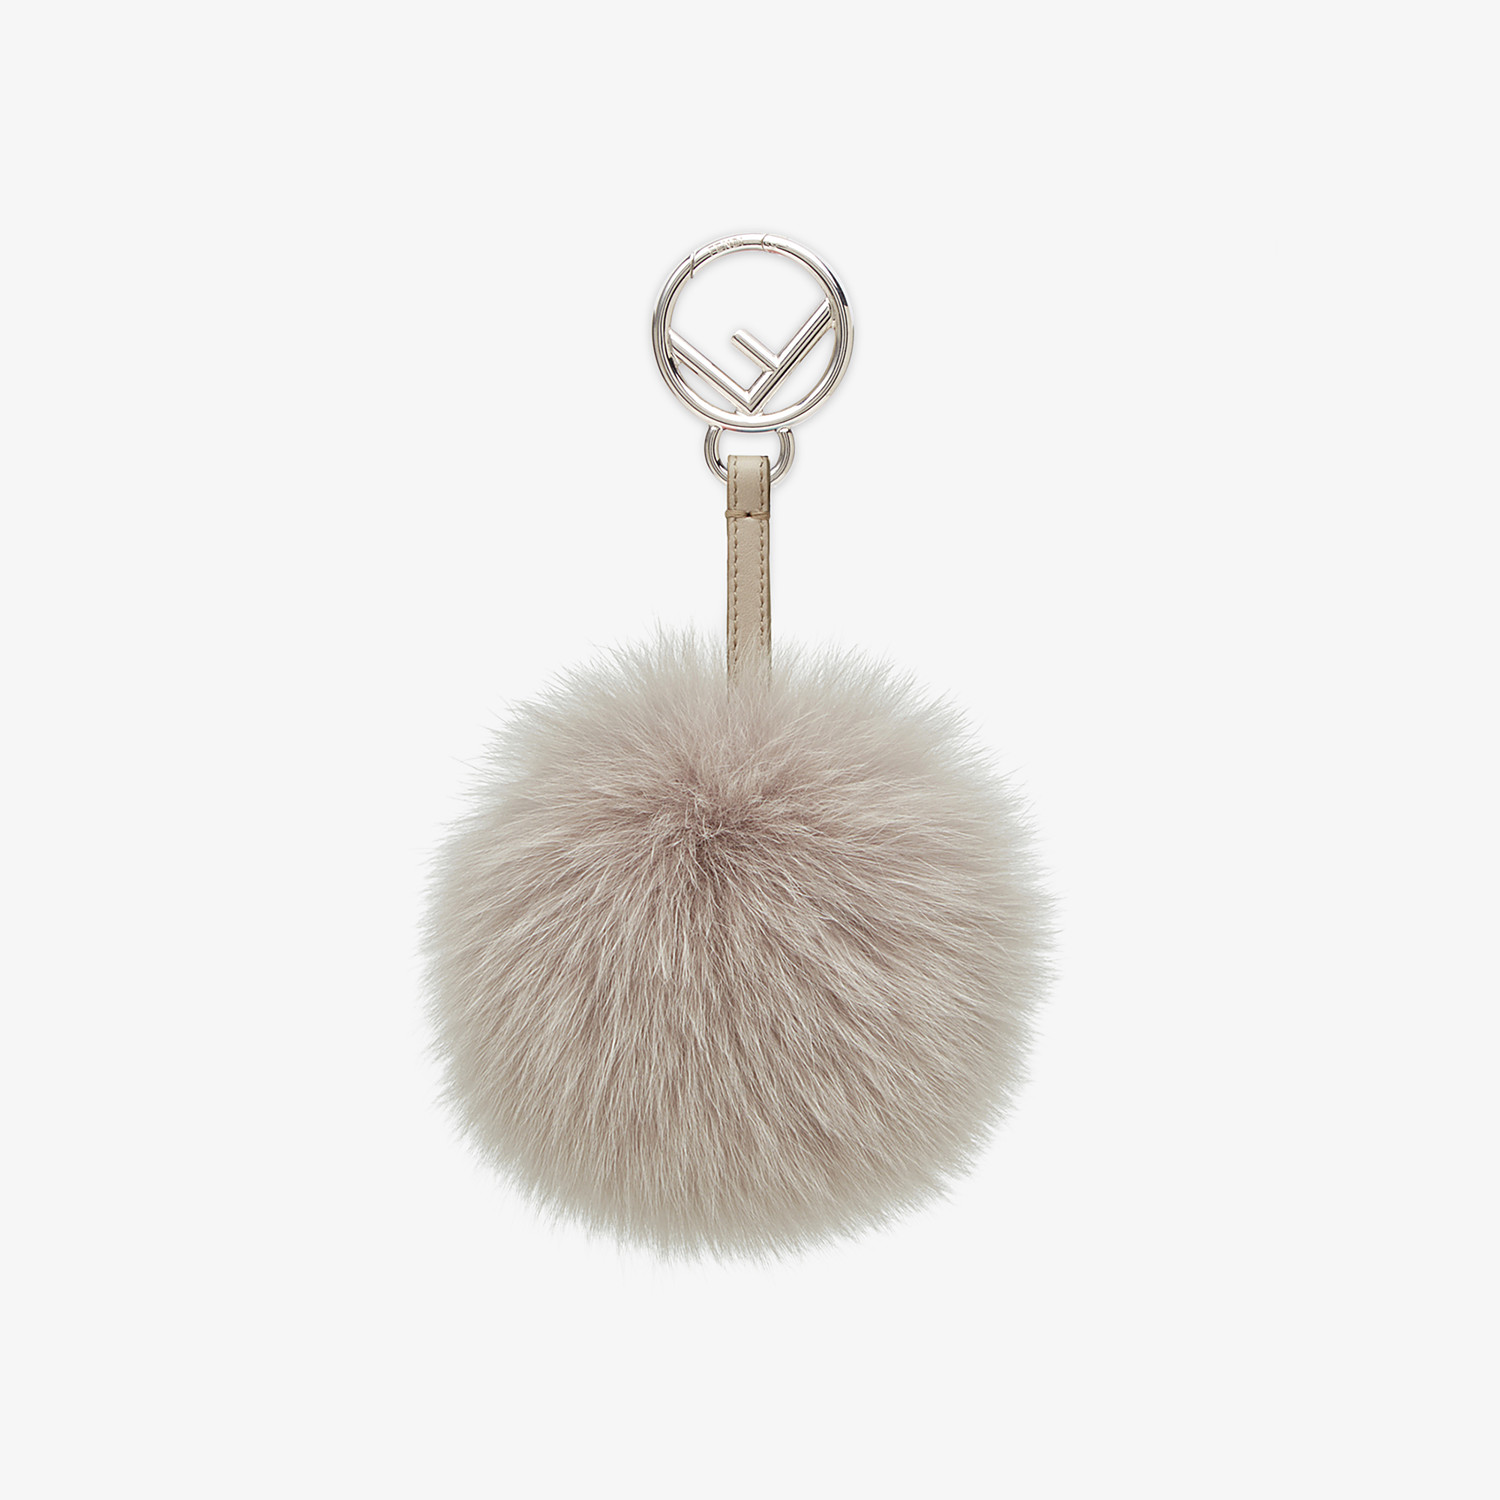 FENDI POM-POM CHARM - Charm in pearl-gray fur - view 1 detail